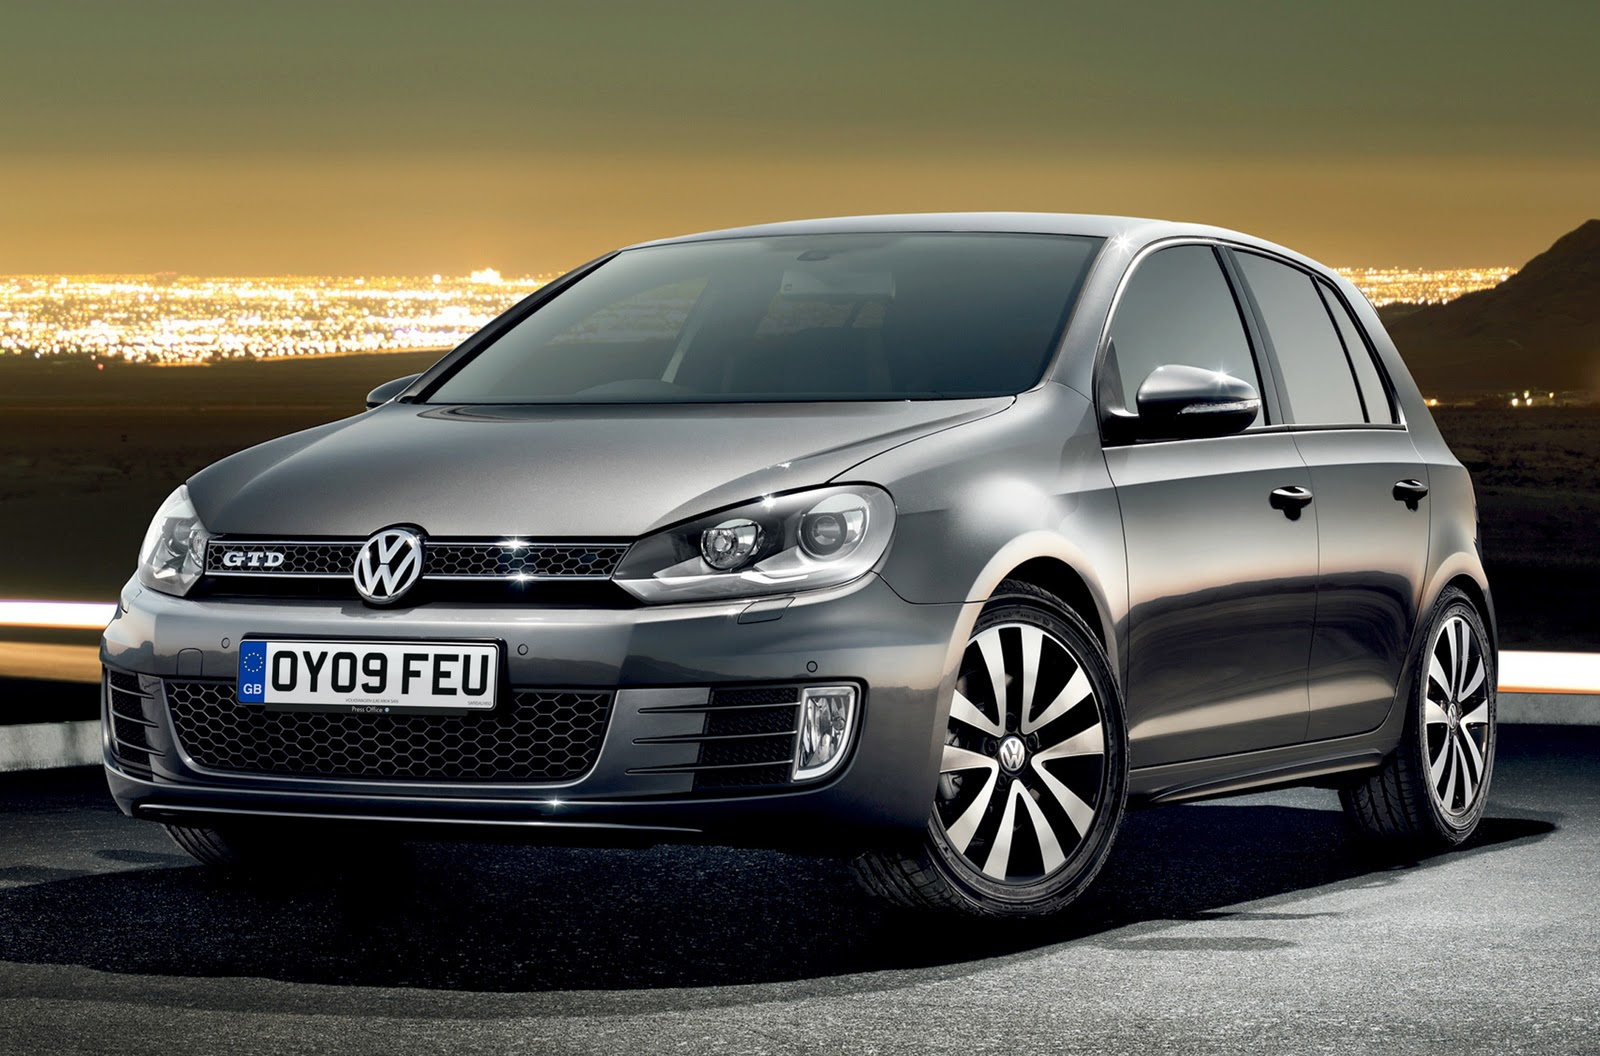 free cars hd wallpapers volkswagen golf 6 gti tuning hd wall. Black Bedroom Furniture Sets. Home Design Ideas